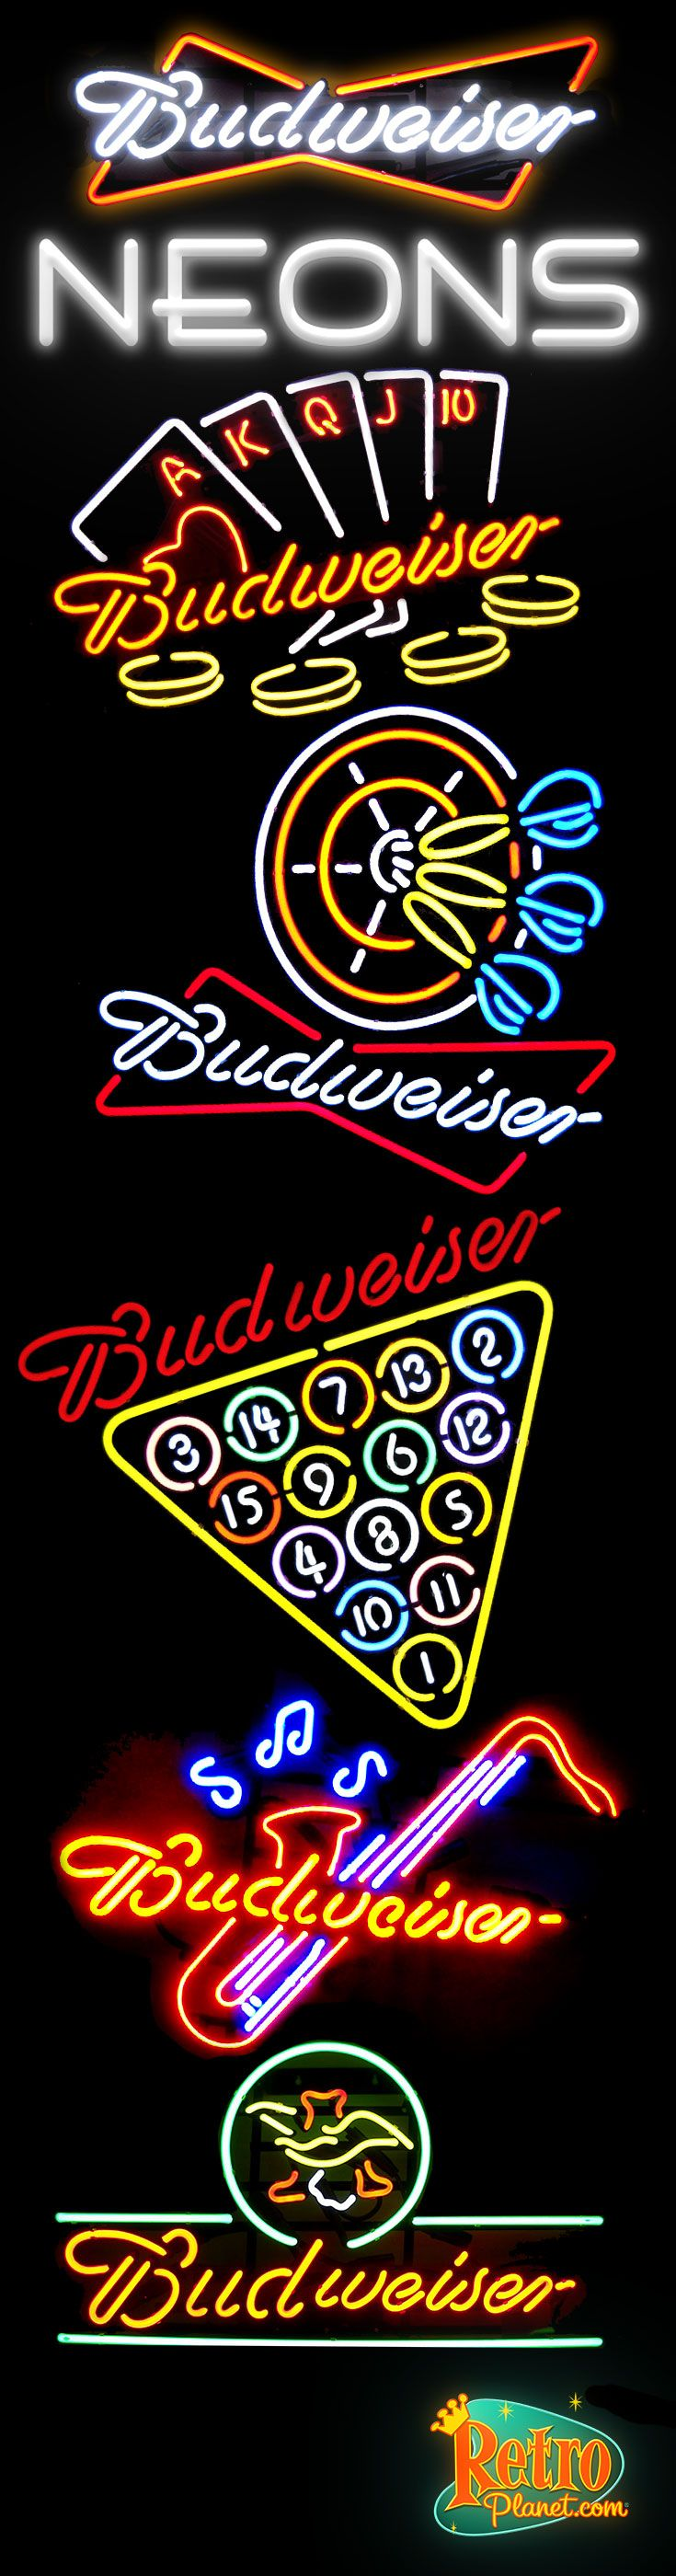 Budweiser is one of the most widely known American style lager beers in the country. These beer drinkers truly love that light and smooth flavor so why would not they truly love any of these cool Budweiser Neon Signs.